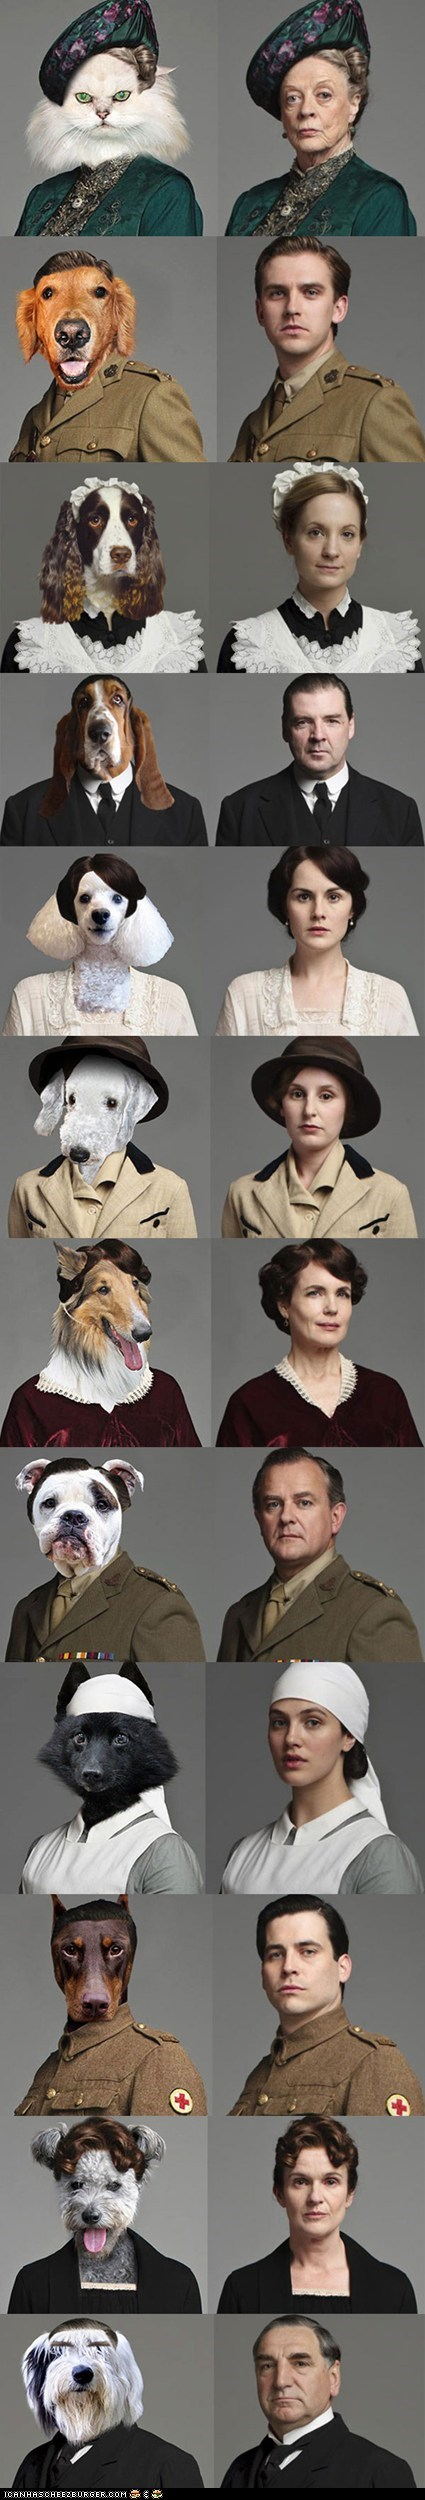 best of the week Cats dogs downton abbey Hall of Fame look alikes photoshopped TV - 6009009152